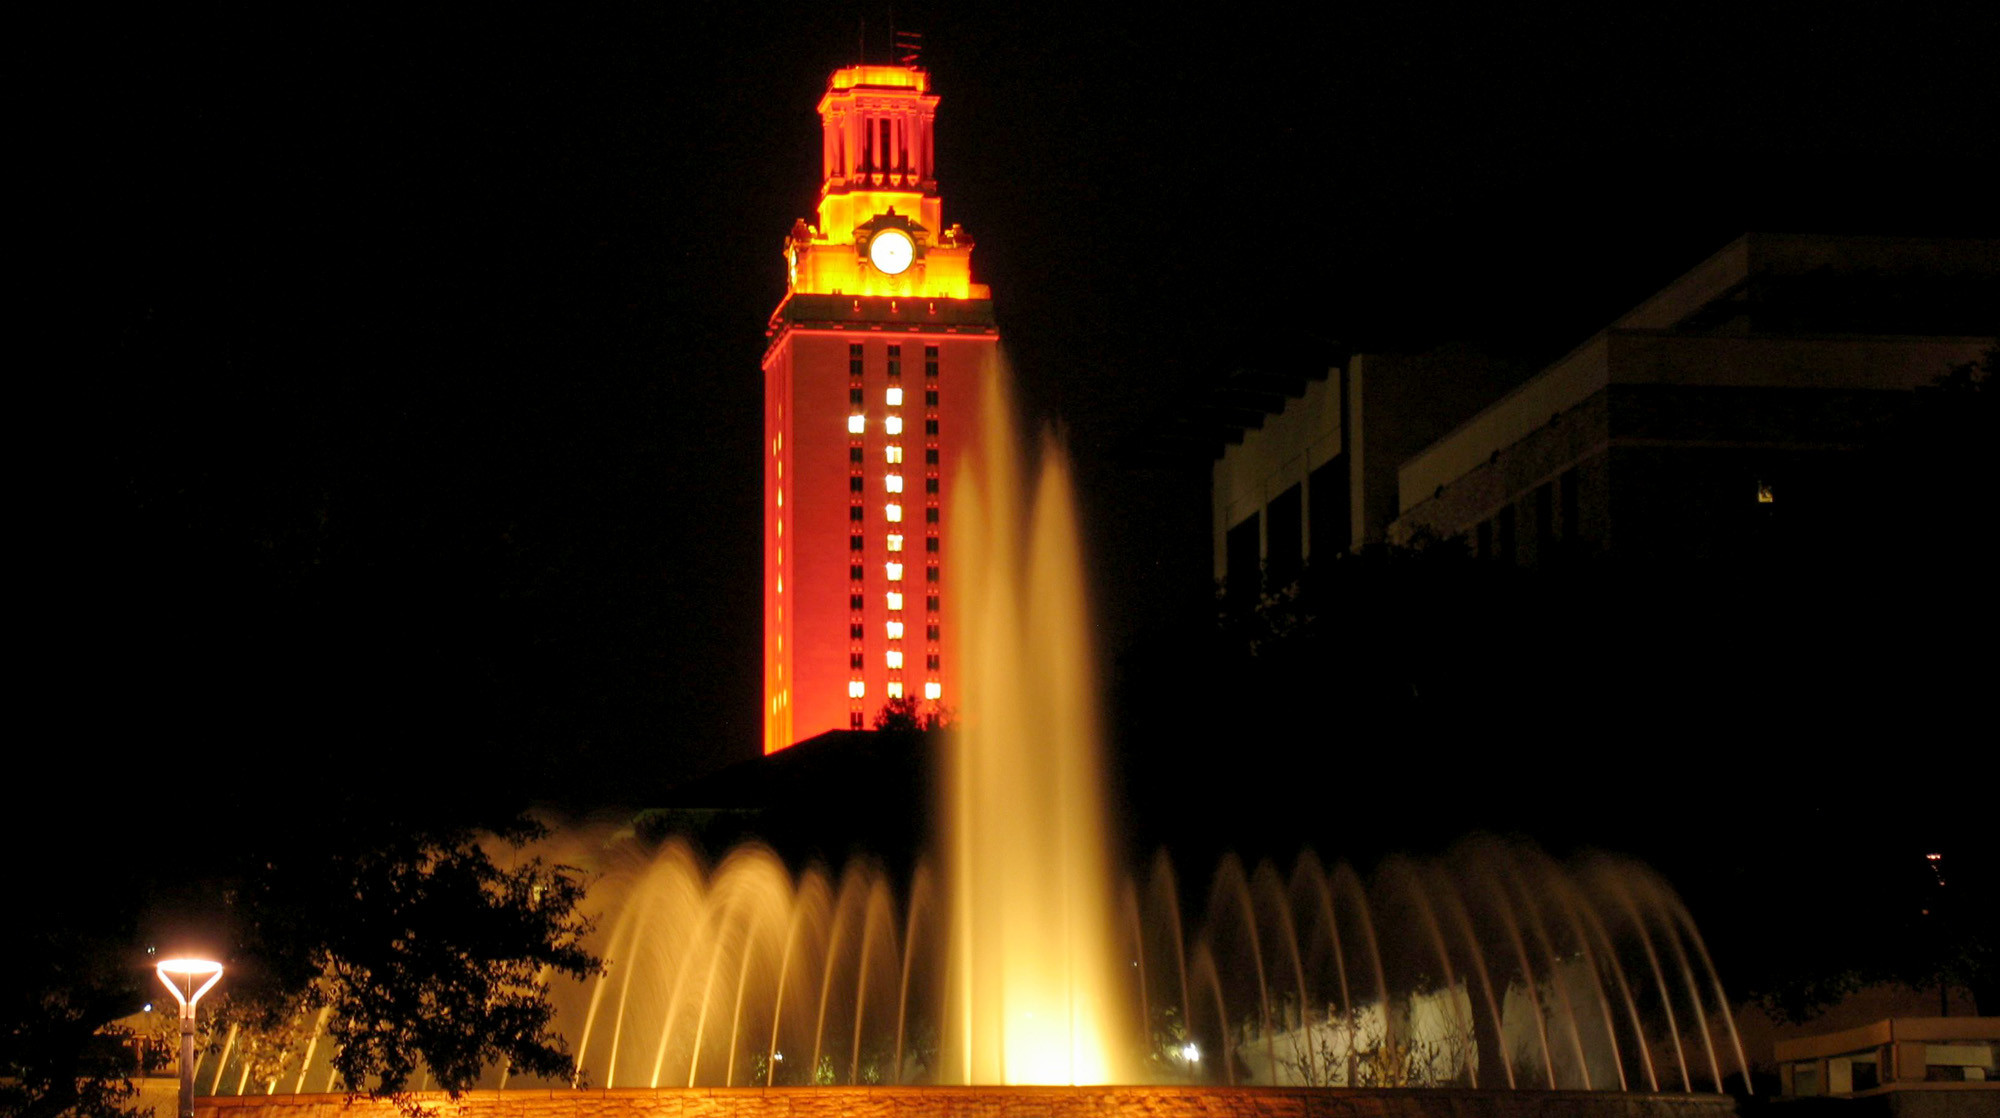 … wallpapers wallpaperpulse; b4 student athletes and activities committee  faculty council; 2016 texas longhorns …